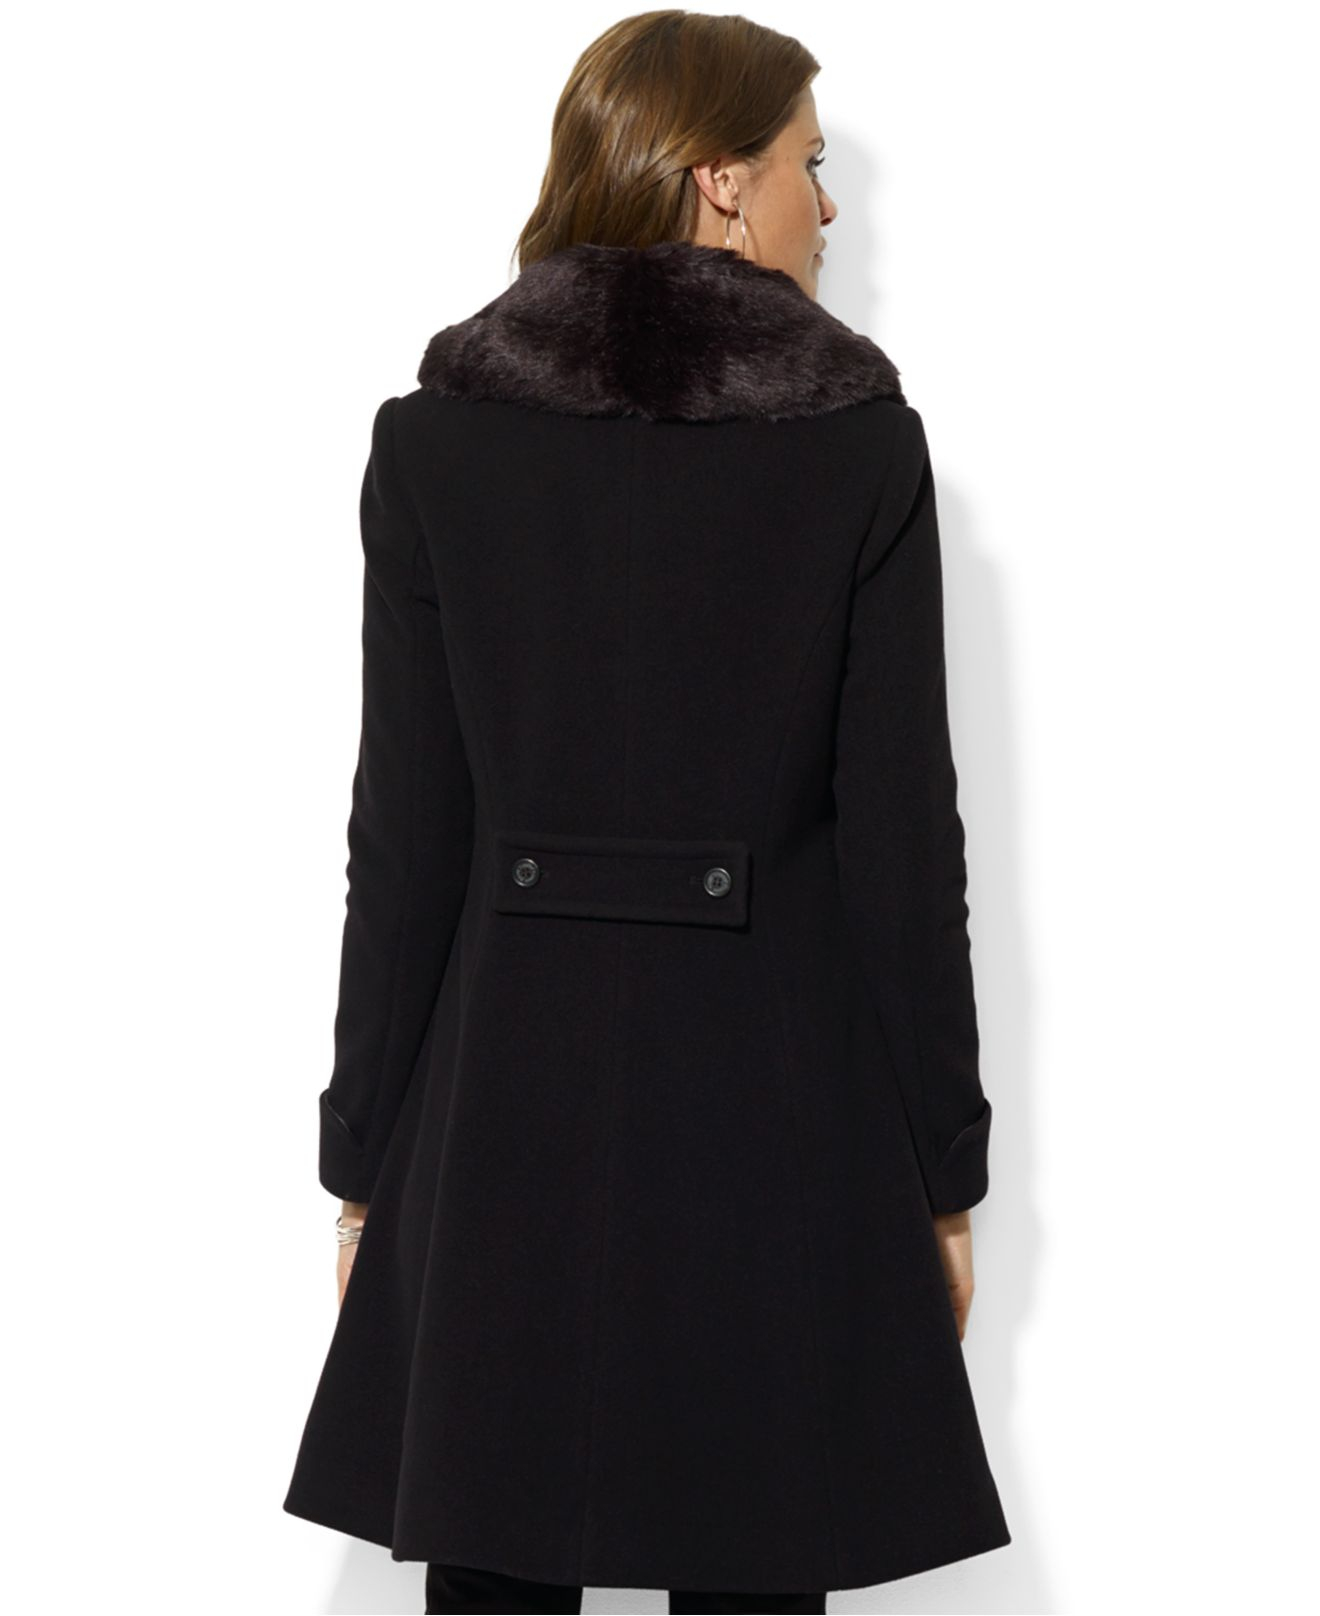 Lauren by ralph lauren Faux-Fur-Collar A-Line Coat in ...